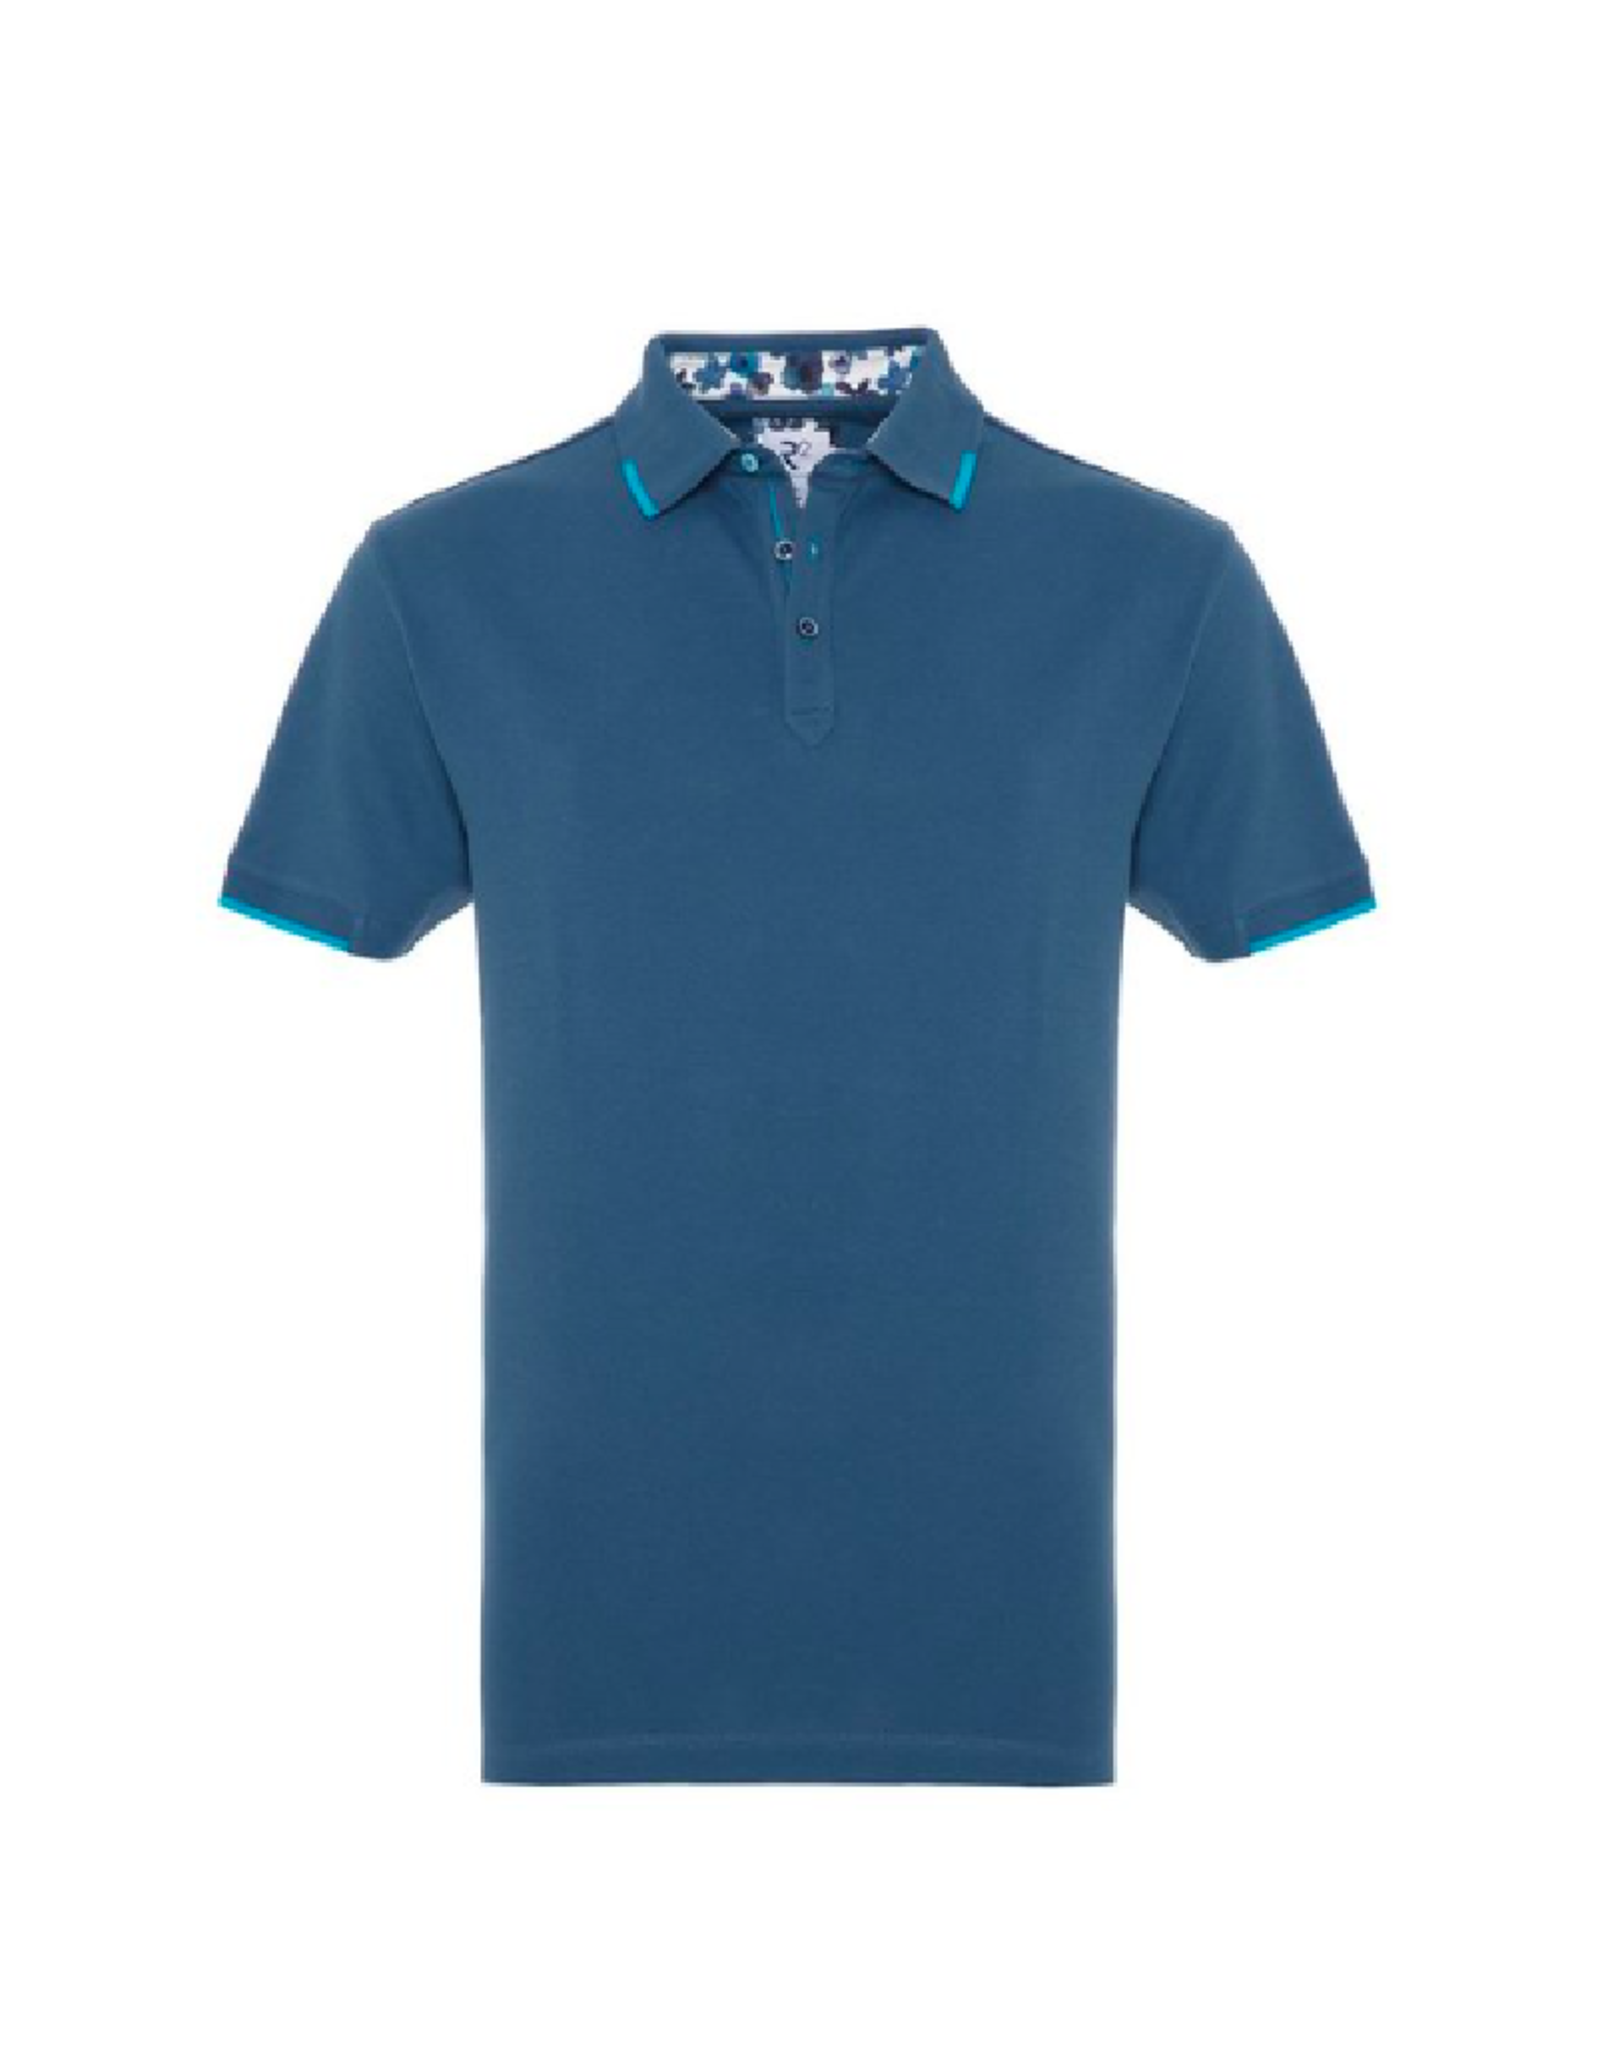 R2 Banded Cotton Stretch Polo